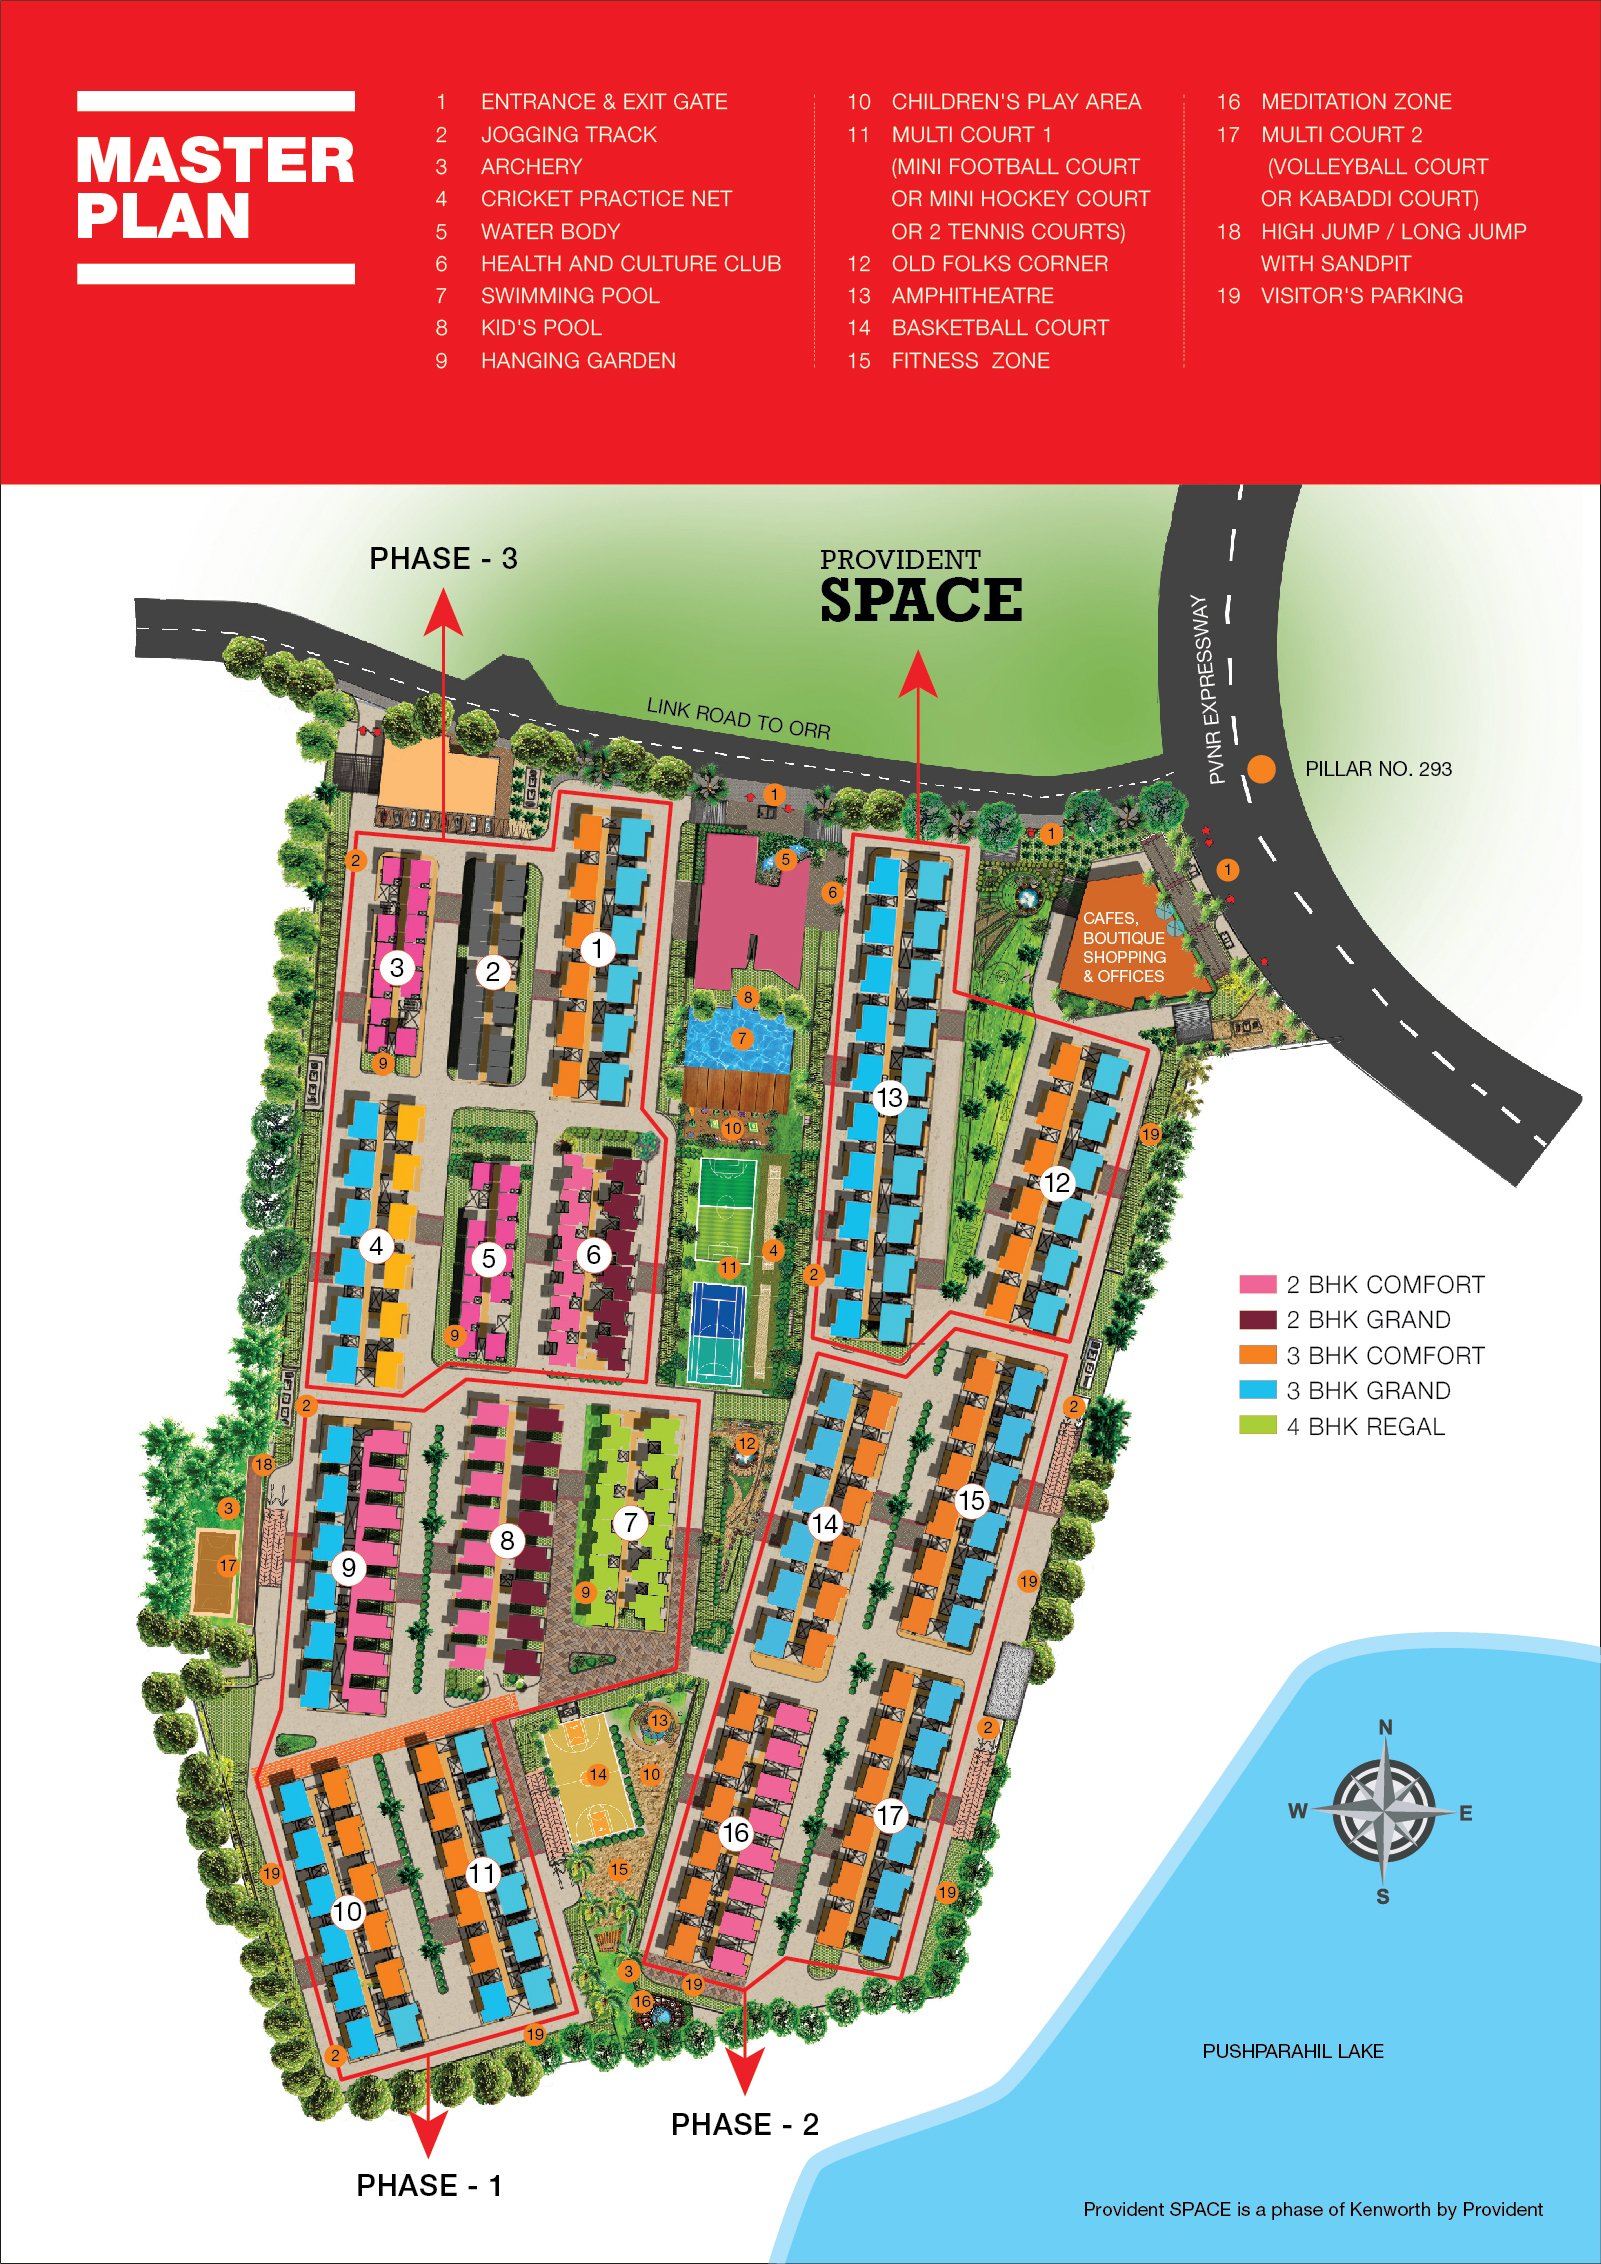 provident space master plan image5